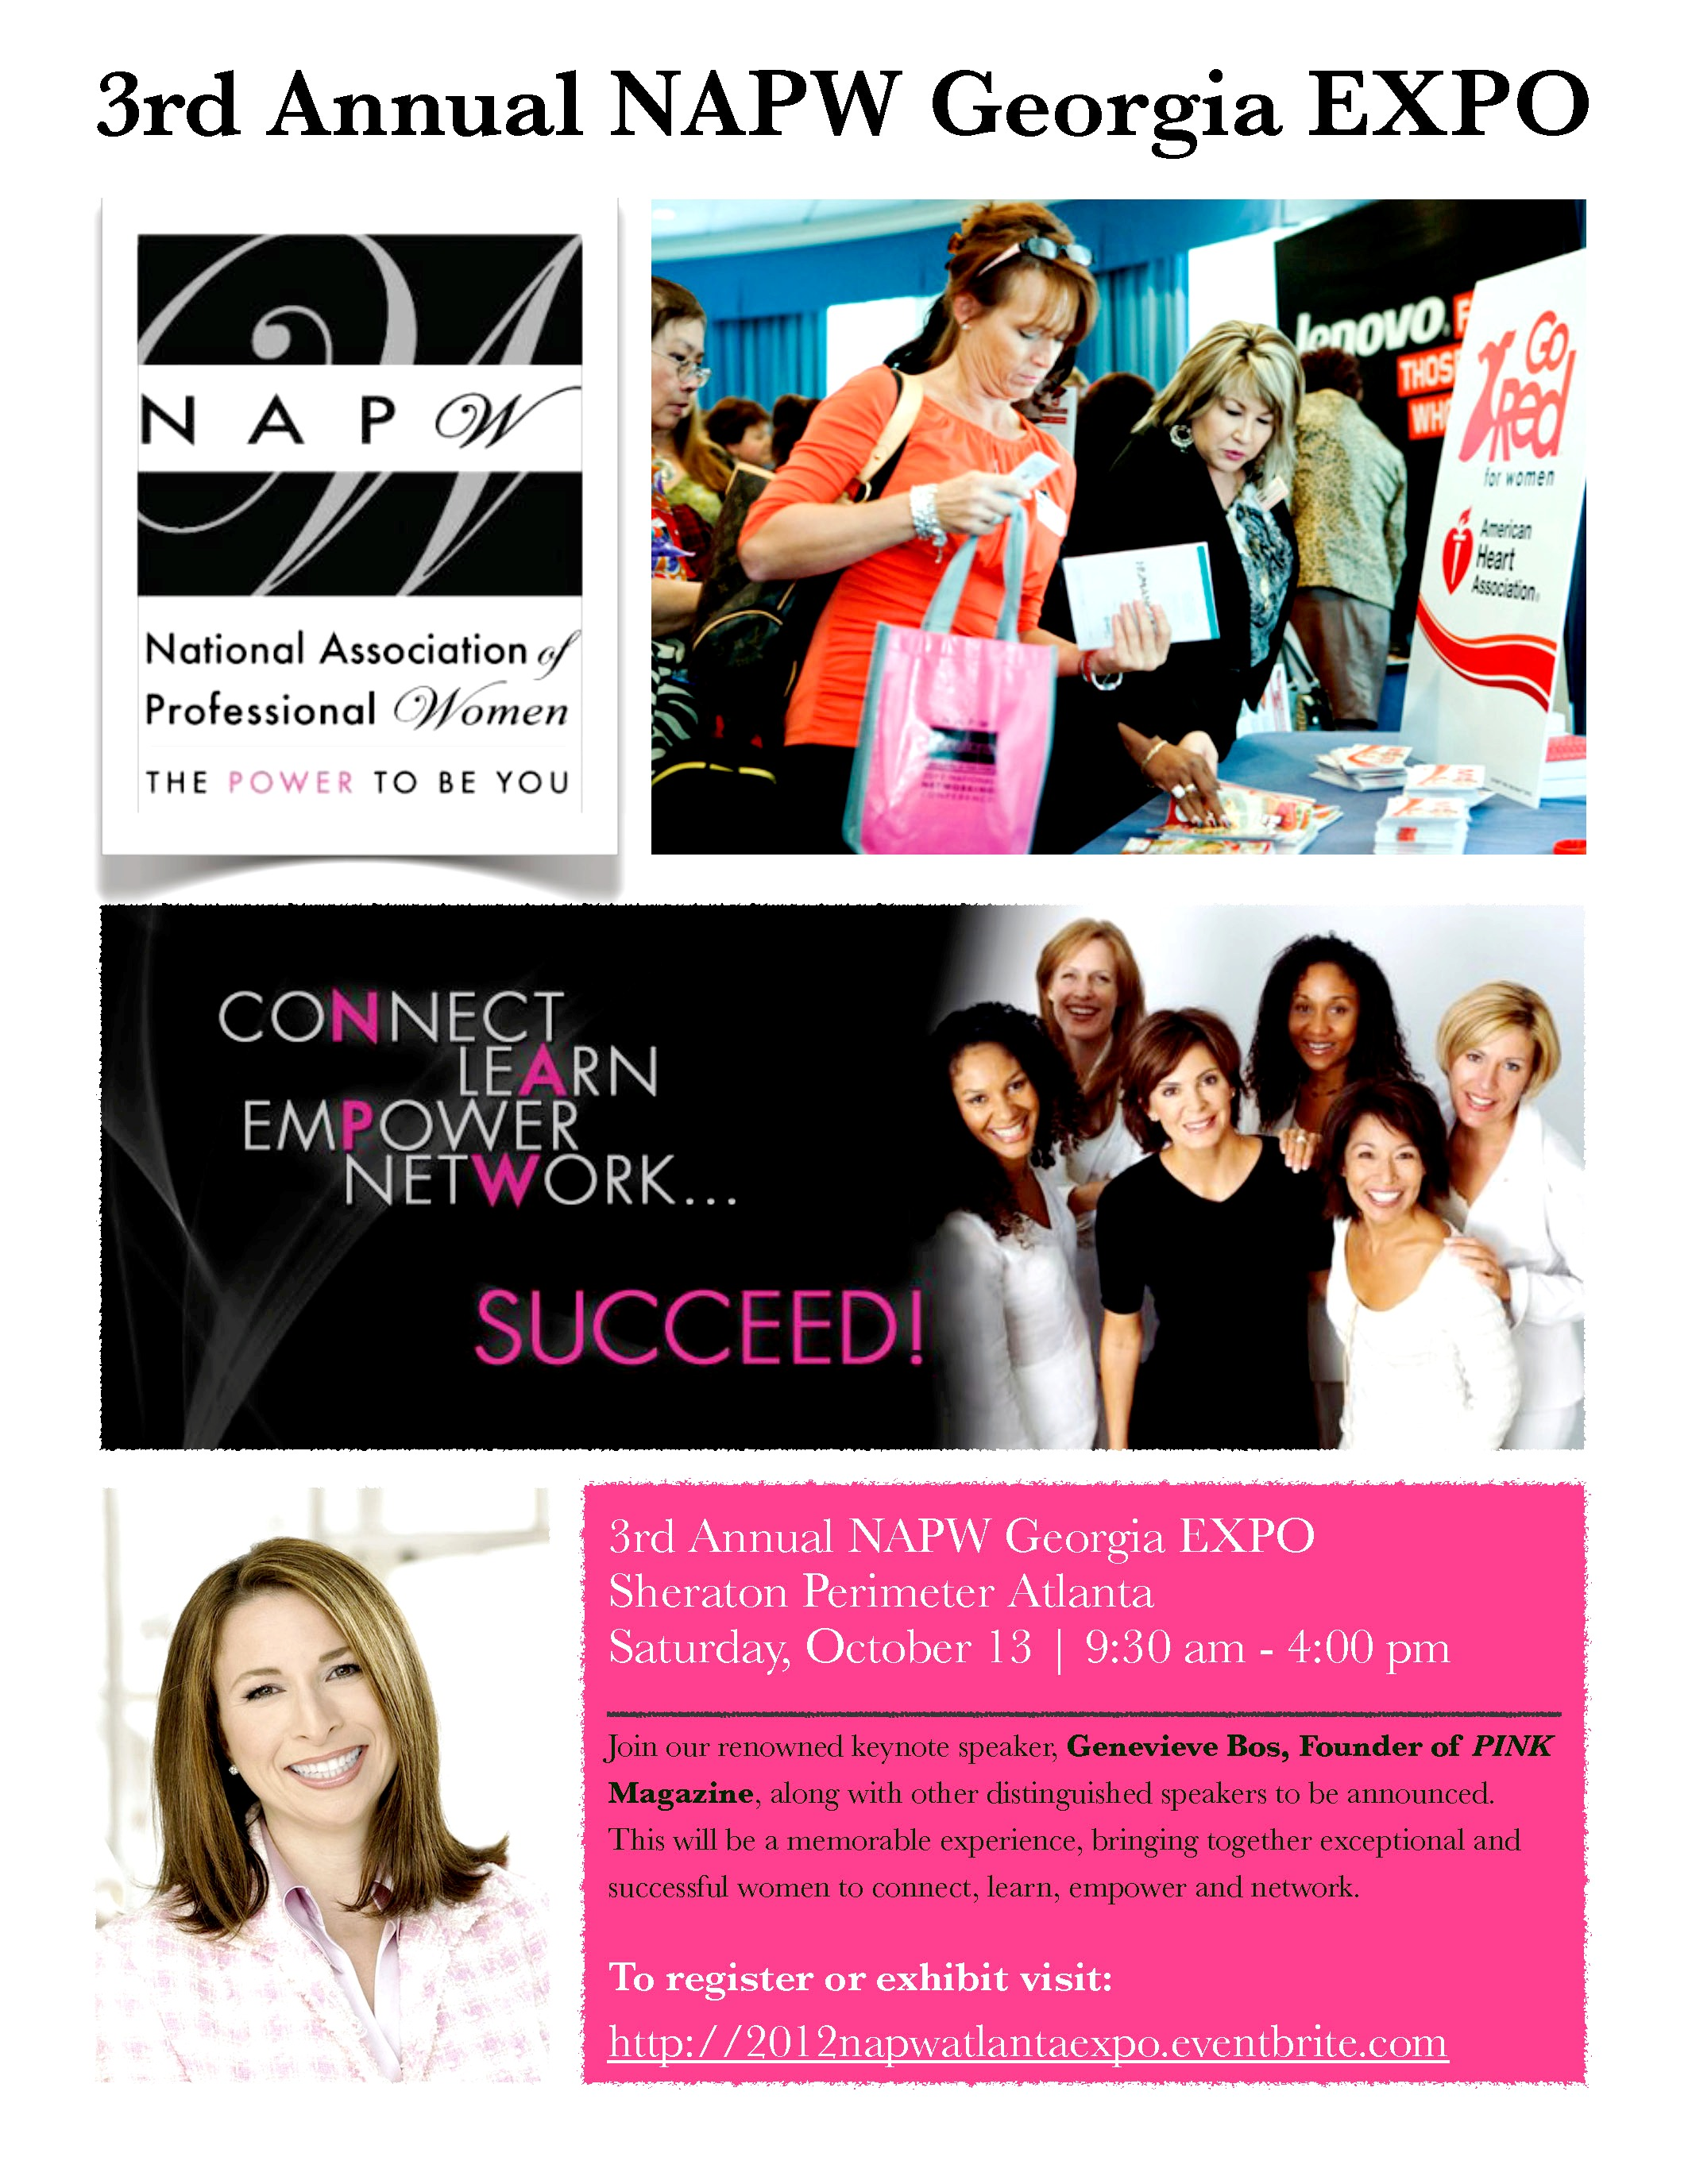 2012 NAPW Georgia EXPO Flyer